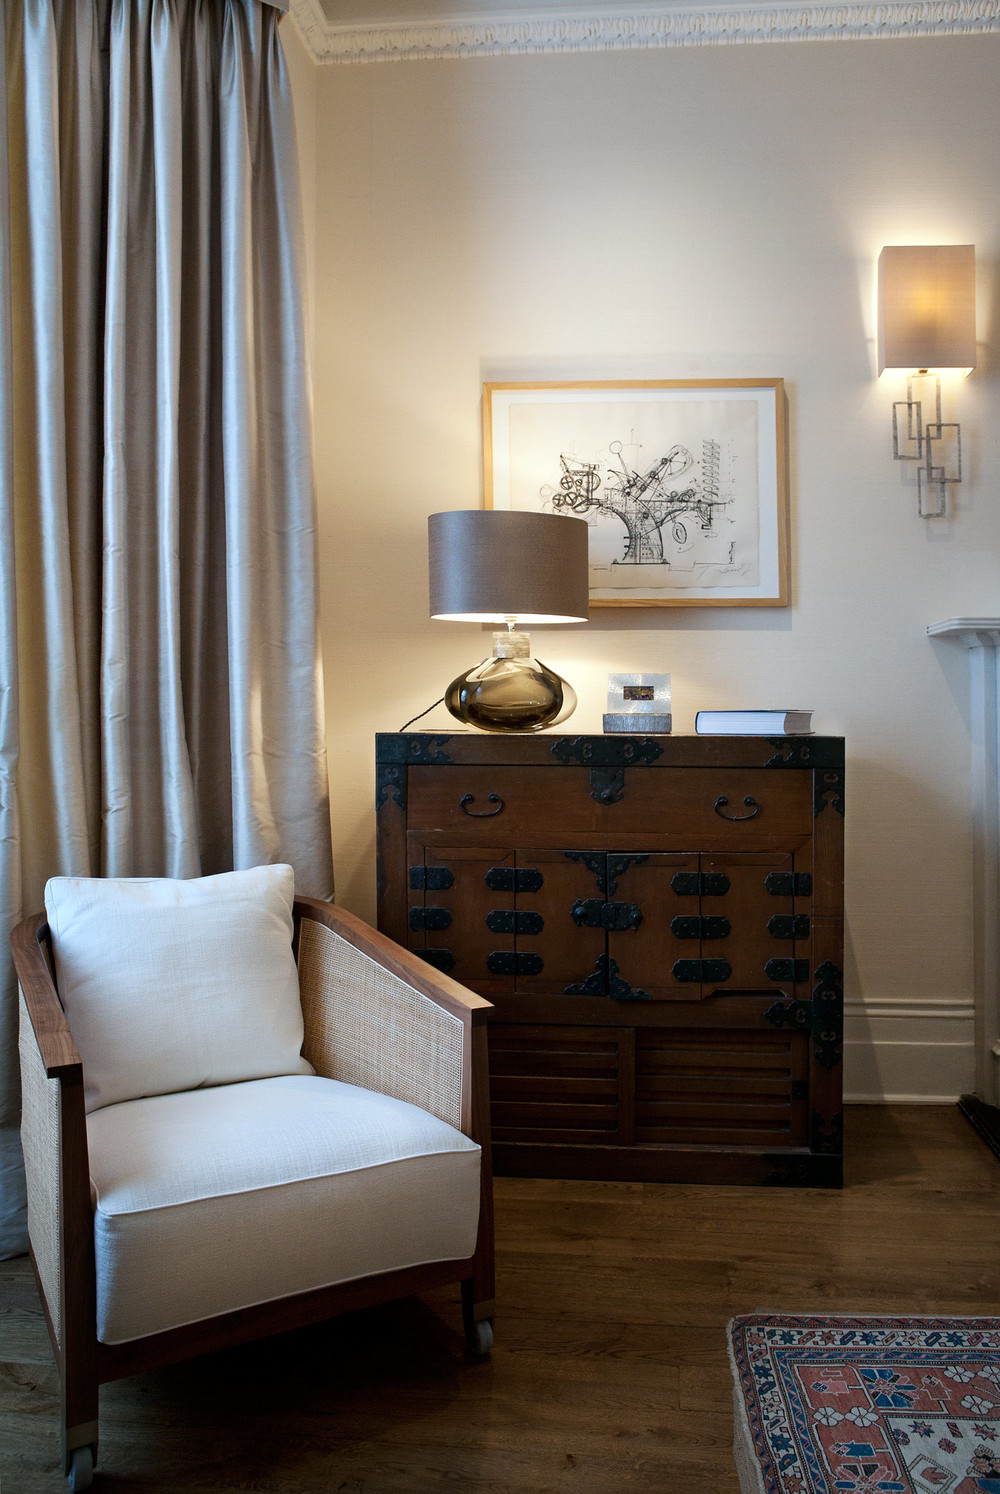 Chairs in Canaletto walnut & reed with white upholstery to add crispness